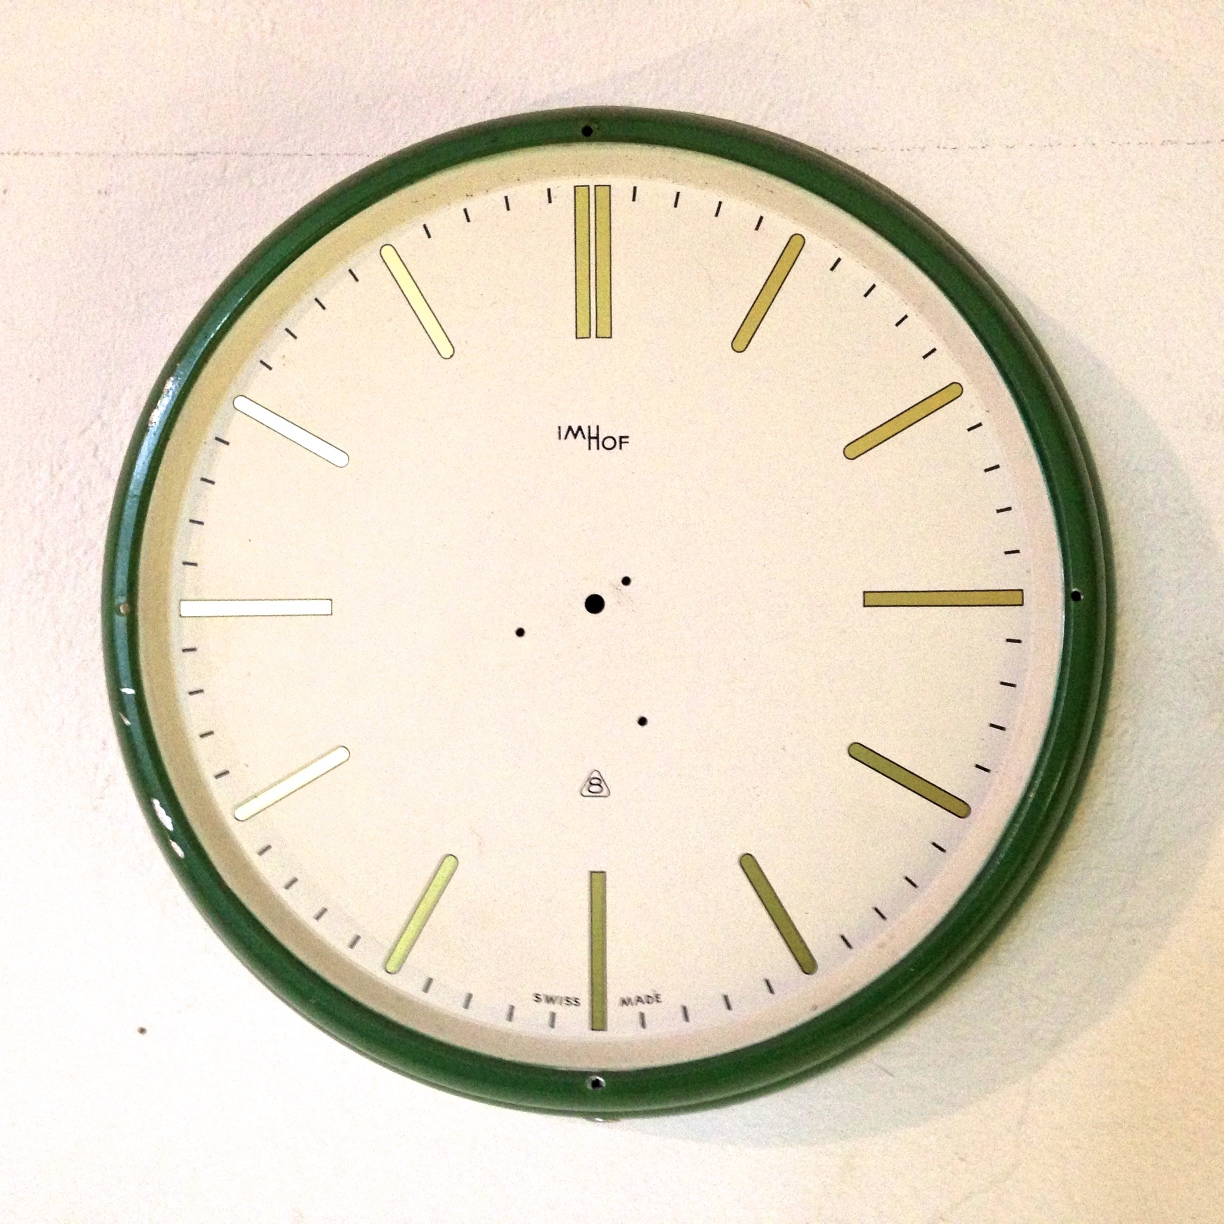 The clock pictured has no hands. Number positions one to eleven are marked with single vertical bars which look like the roman numeral for 1, the twelve position is marked with a double bar which looks like the numeral for 2.